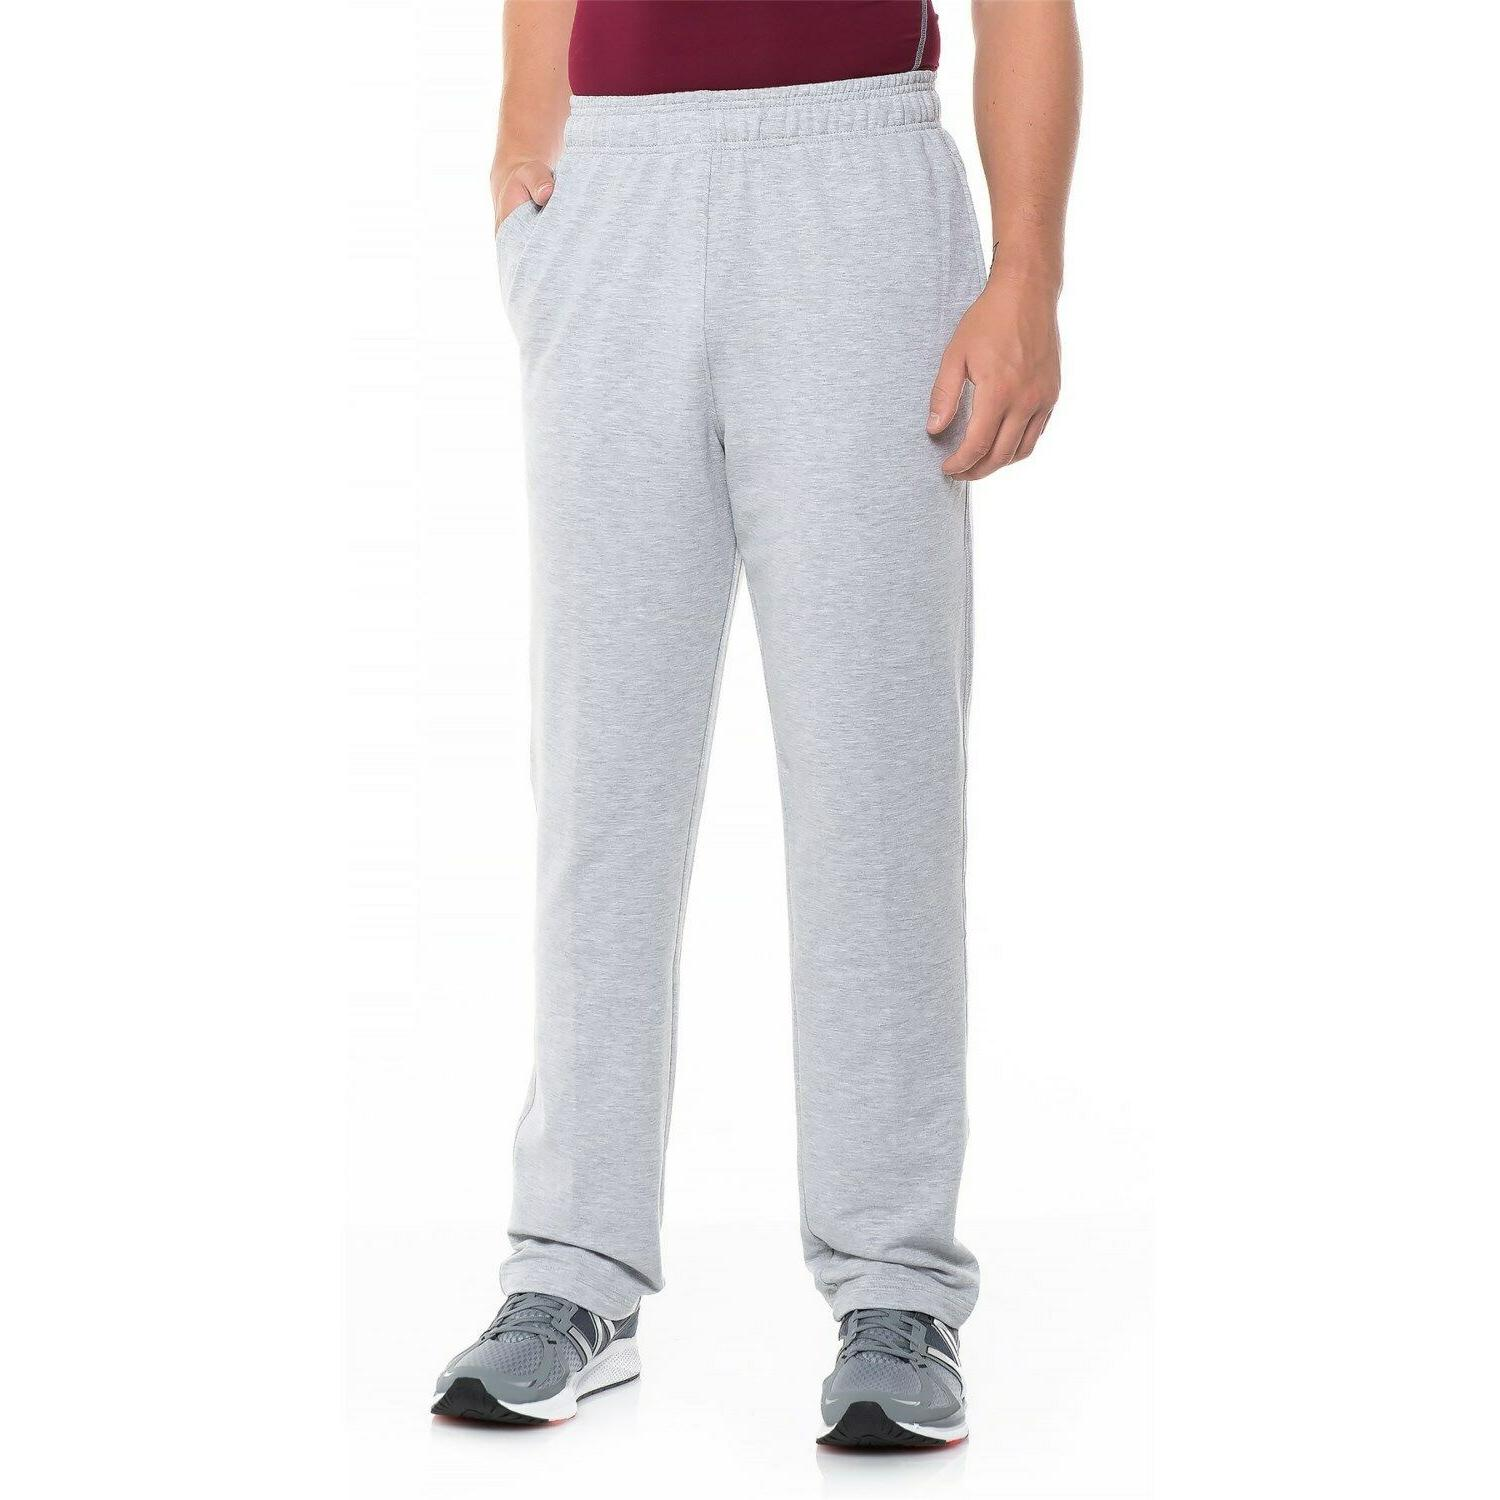 team everyday pants mens gray athletic joggers